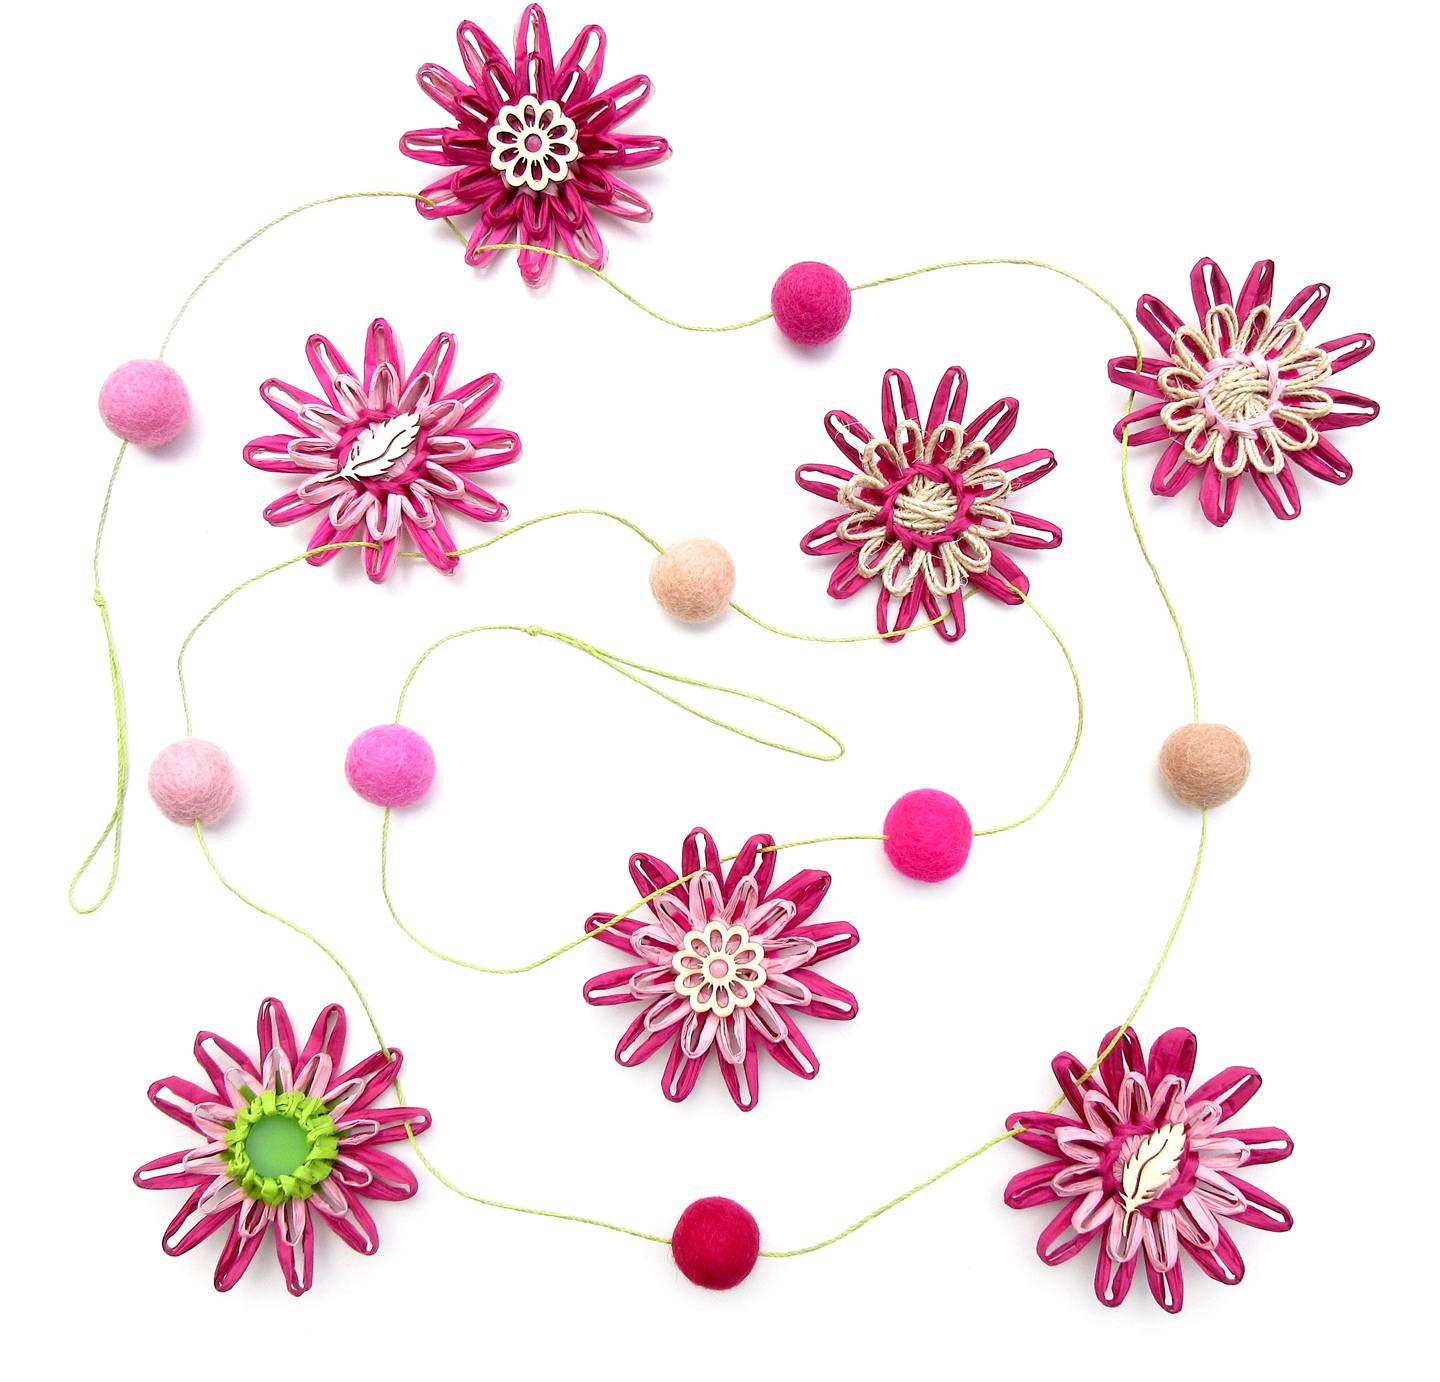 A raffia flower and pom-pom garland in happy shades of pink and a dash of lime green by M Decor Botanica